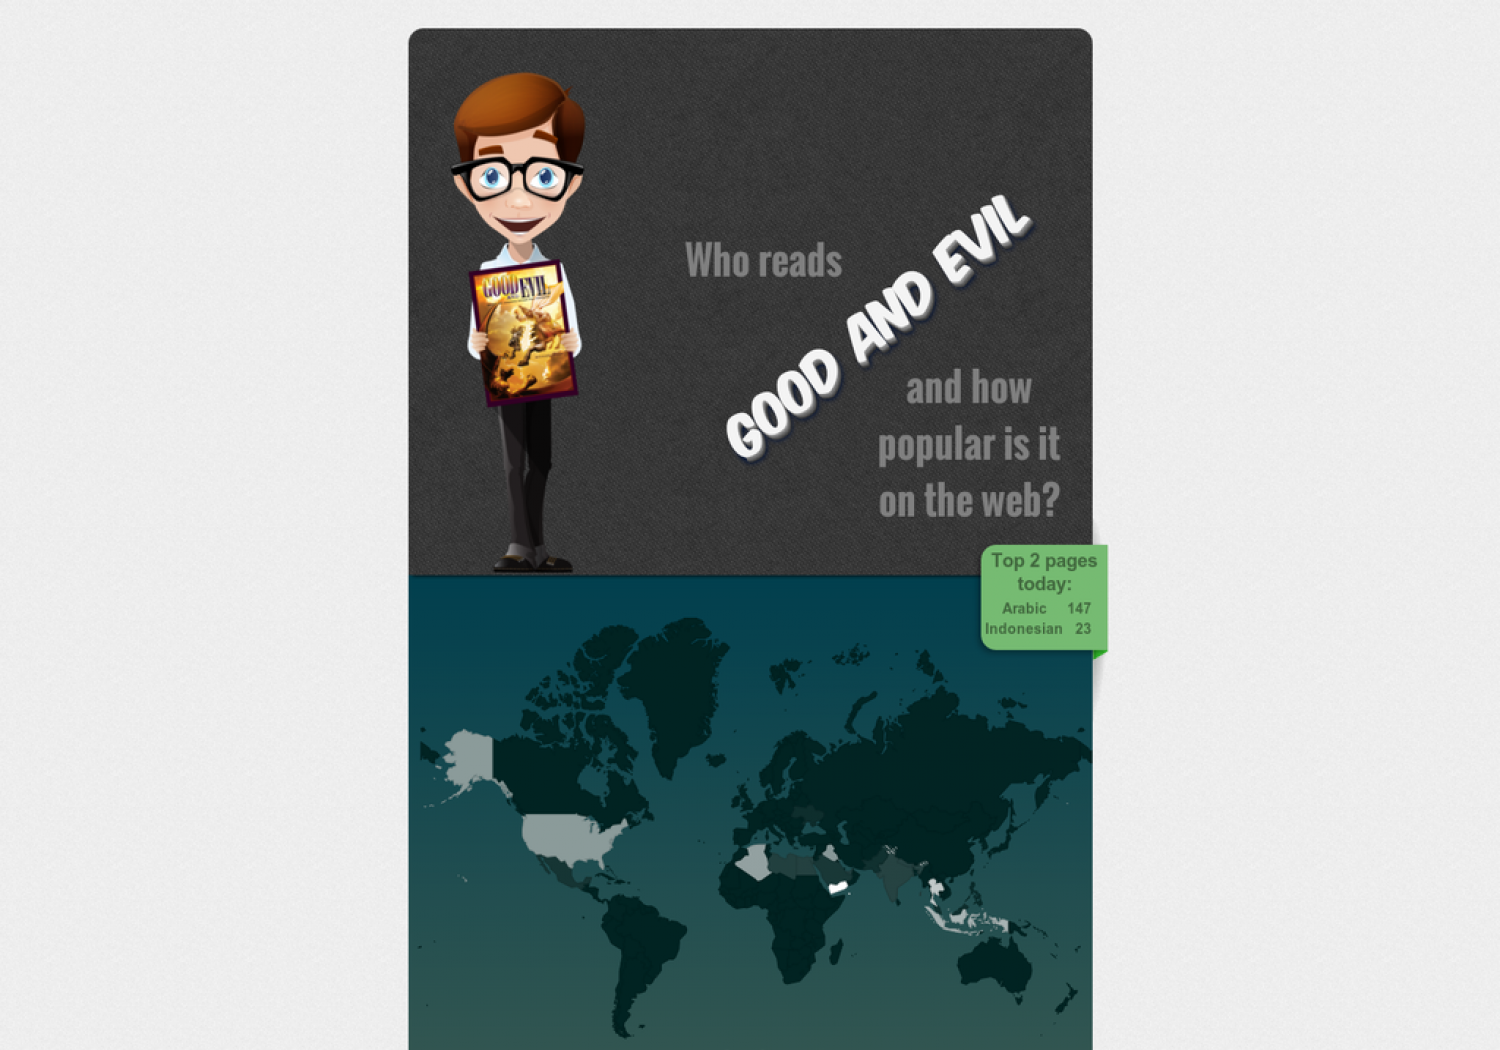 Who Reads Good and Evil and how popular is it on the web? Infographic